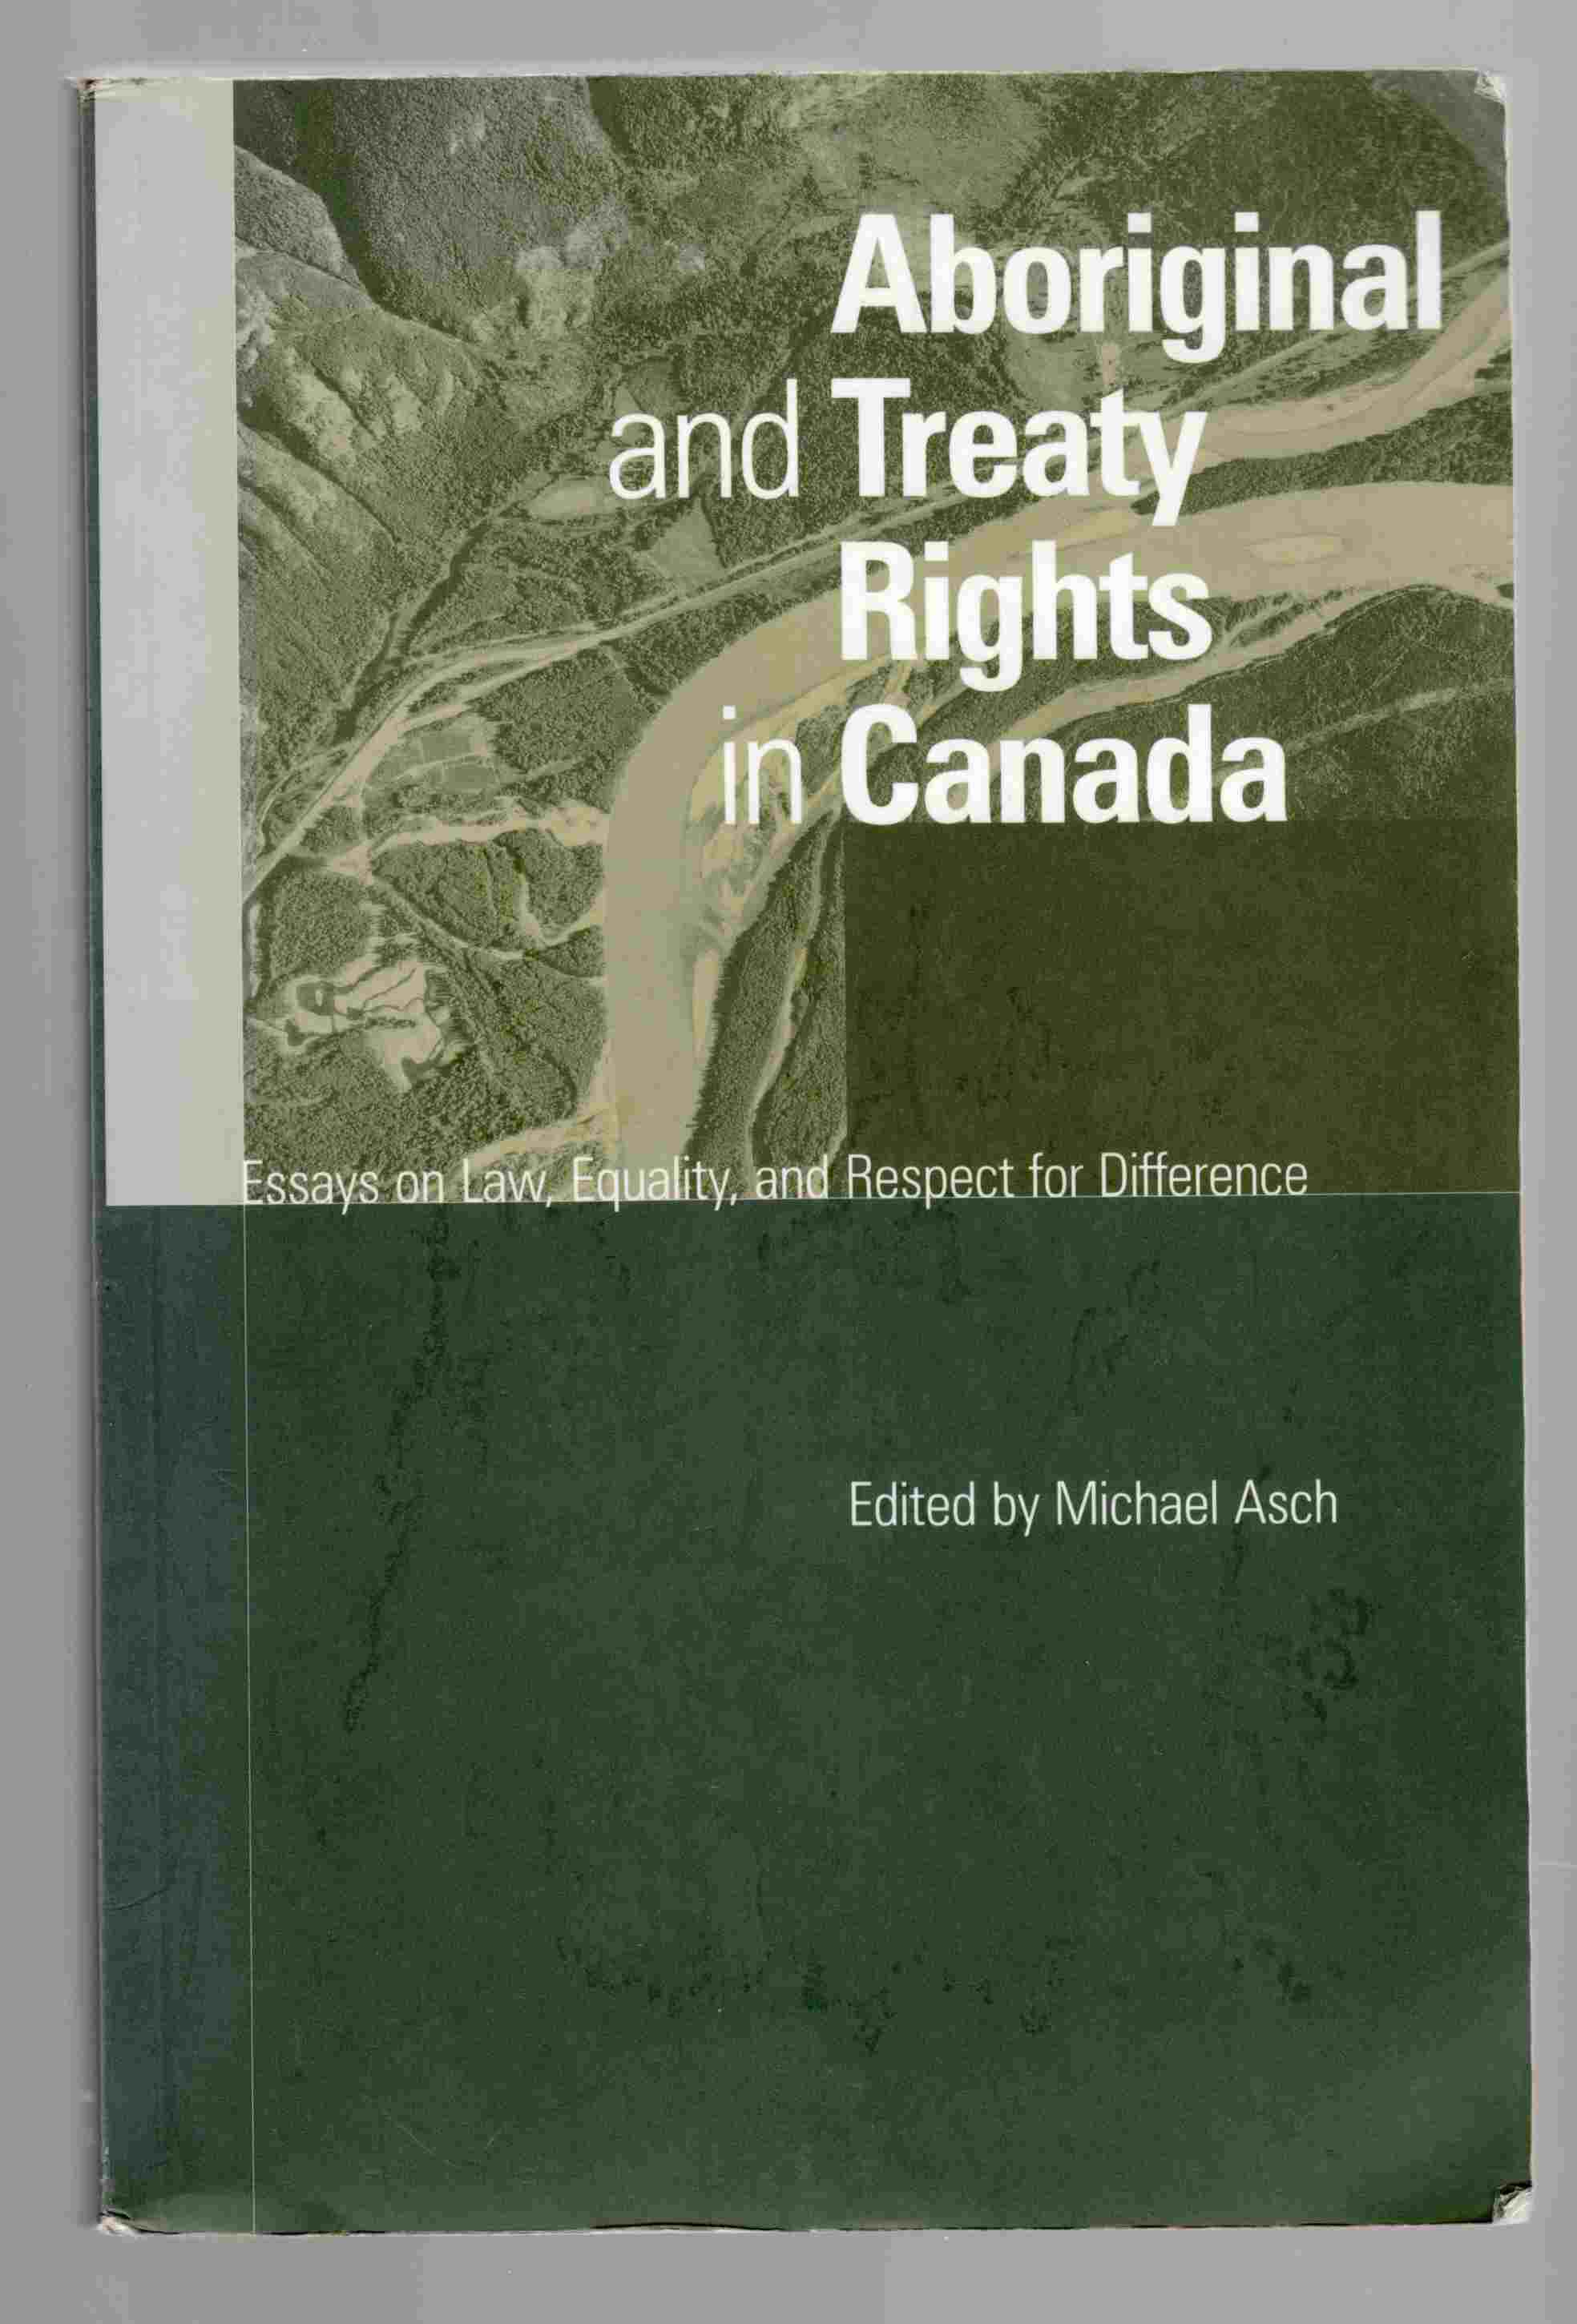 Image for Aboriginal and Treaty Rights in Canada Essays on Law, Equality, and Respect for Difference